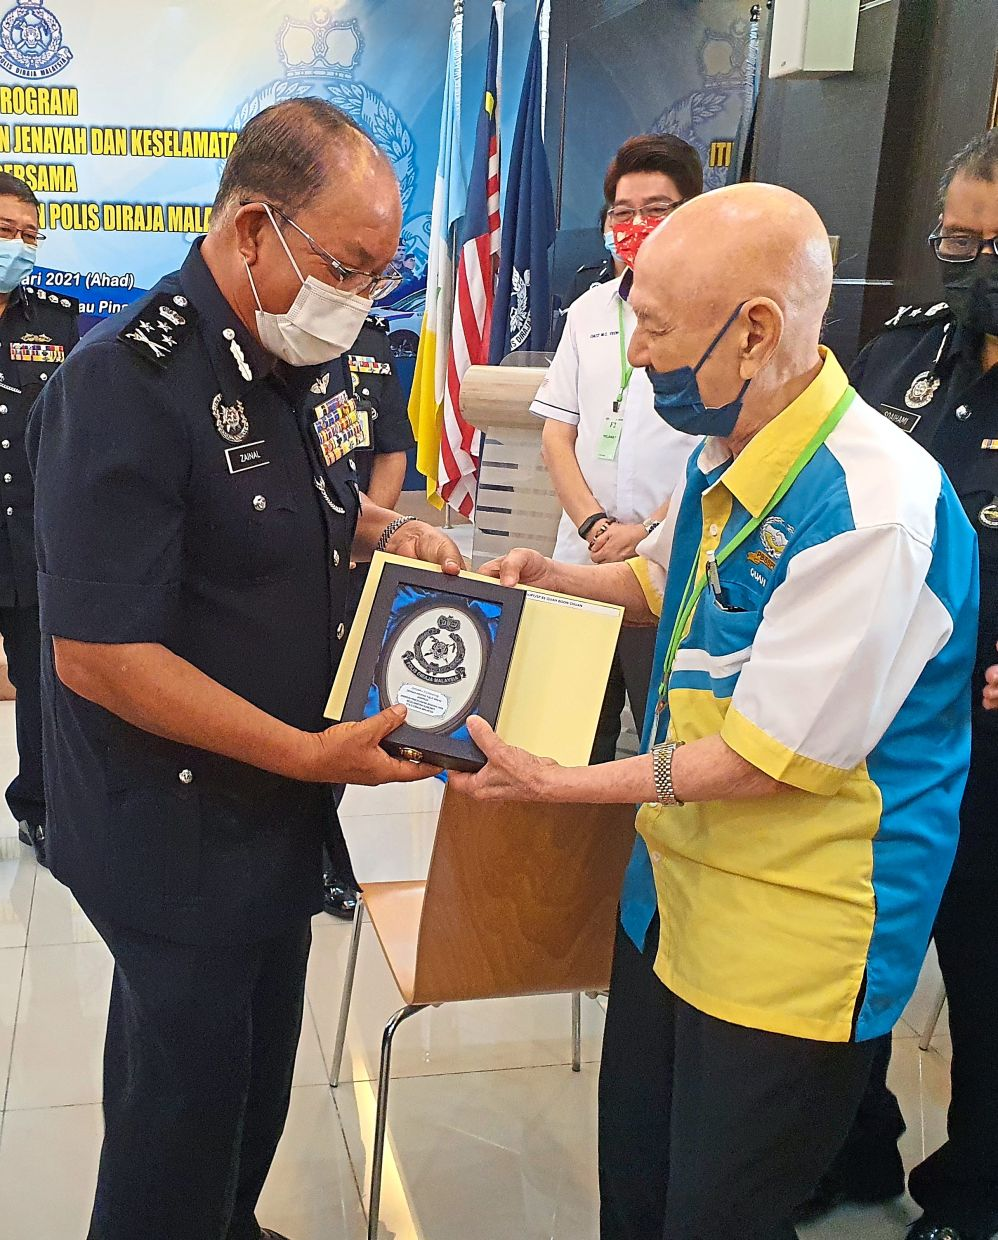 Retired PVR officer 95-year-old Superintendent/SP (B) Quah Boon Chuan (right), who also served as a PVR Commandant of the Penang Contingent, receiving a plaque and certificate of appreciation from Director of Crime Prevention and Community Safety Department, Royal Malaysia Police YDH CP Datuk Zainal Abidin Kasim at the Penang Contingent Police Headquarters recently.